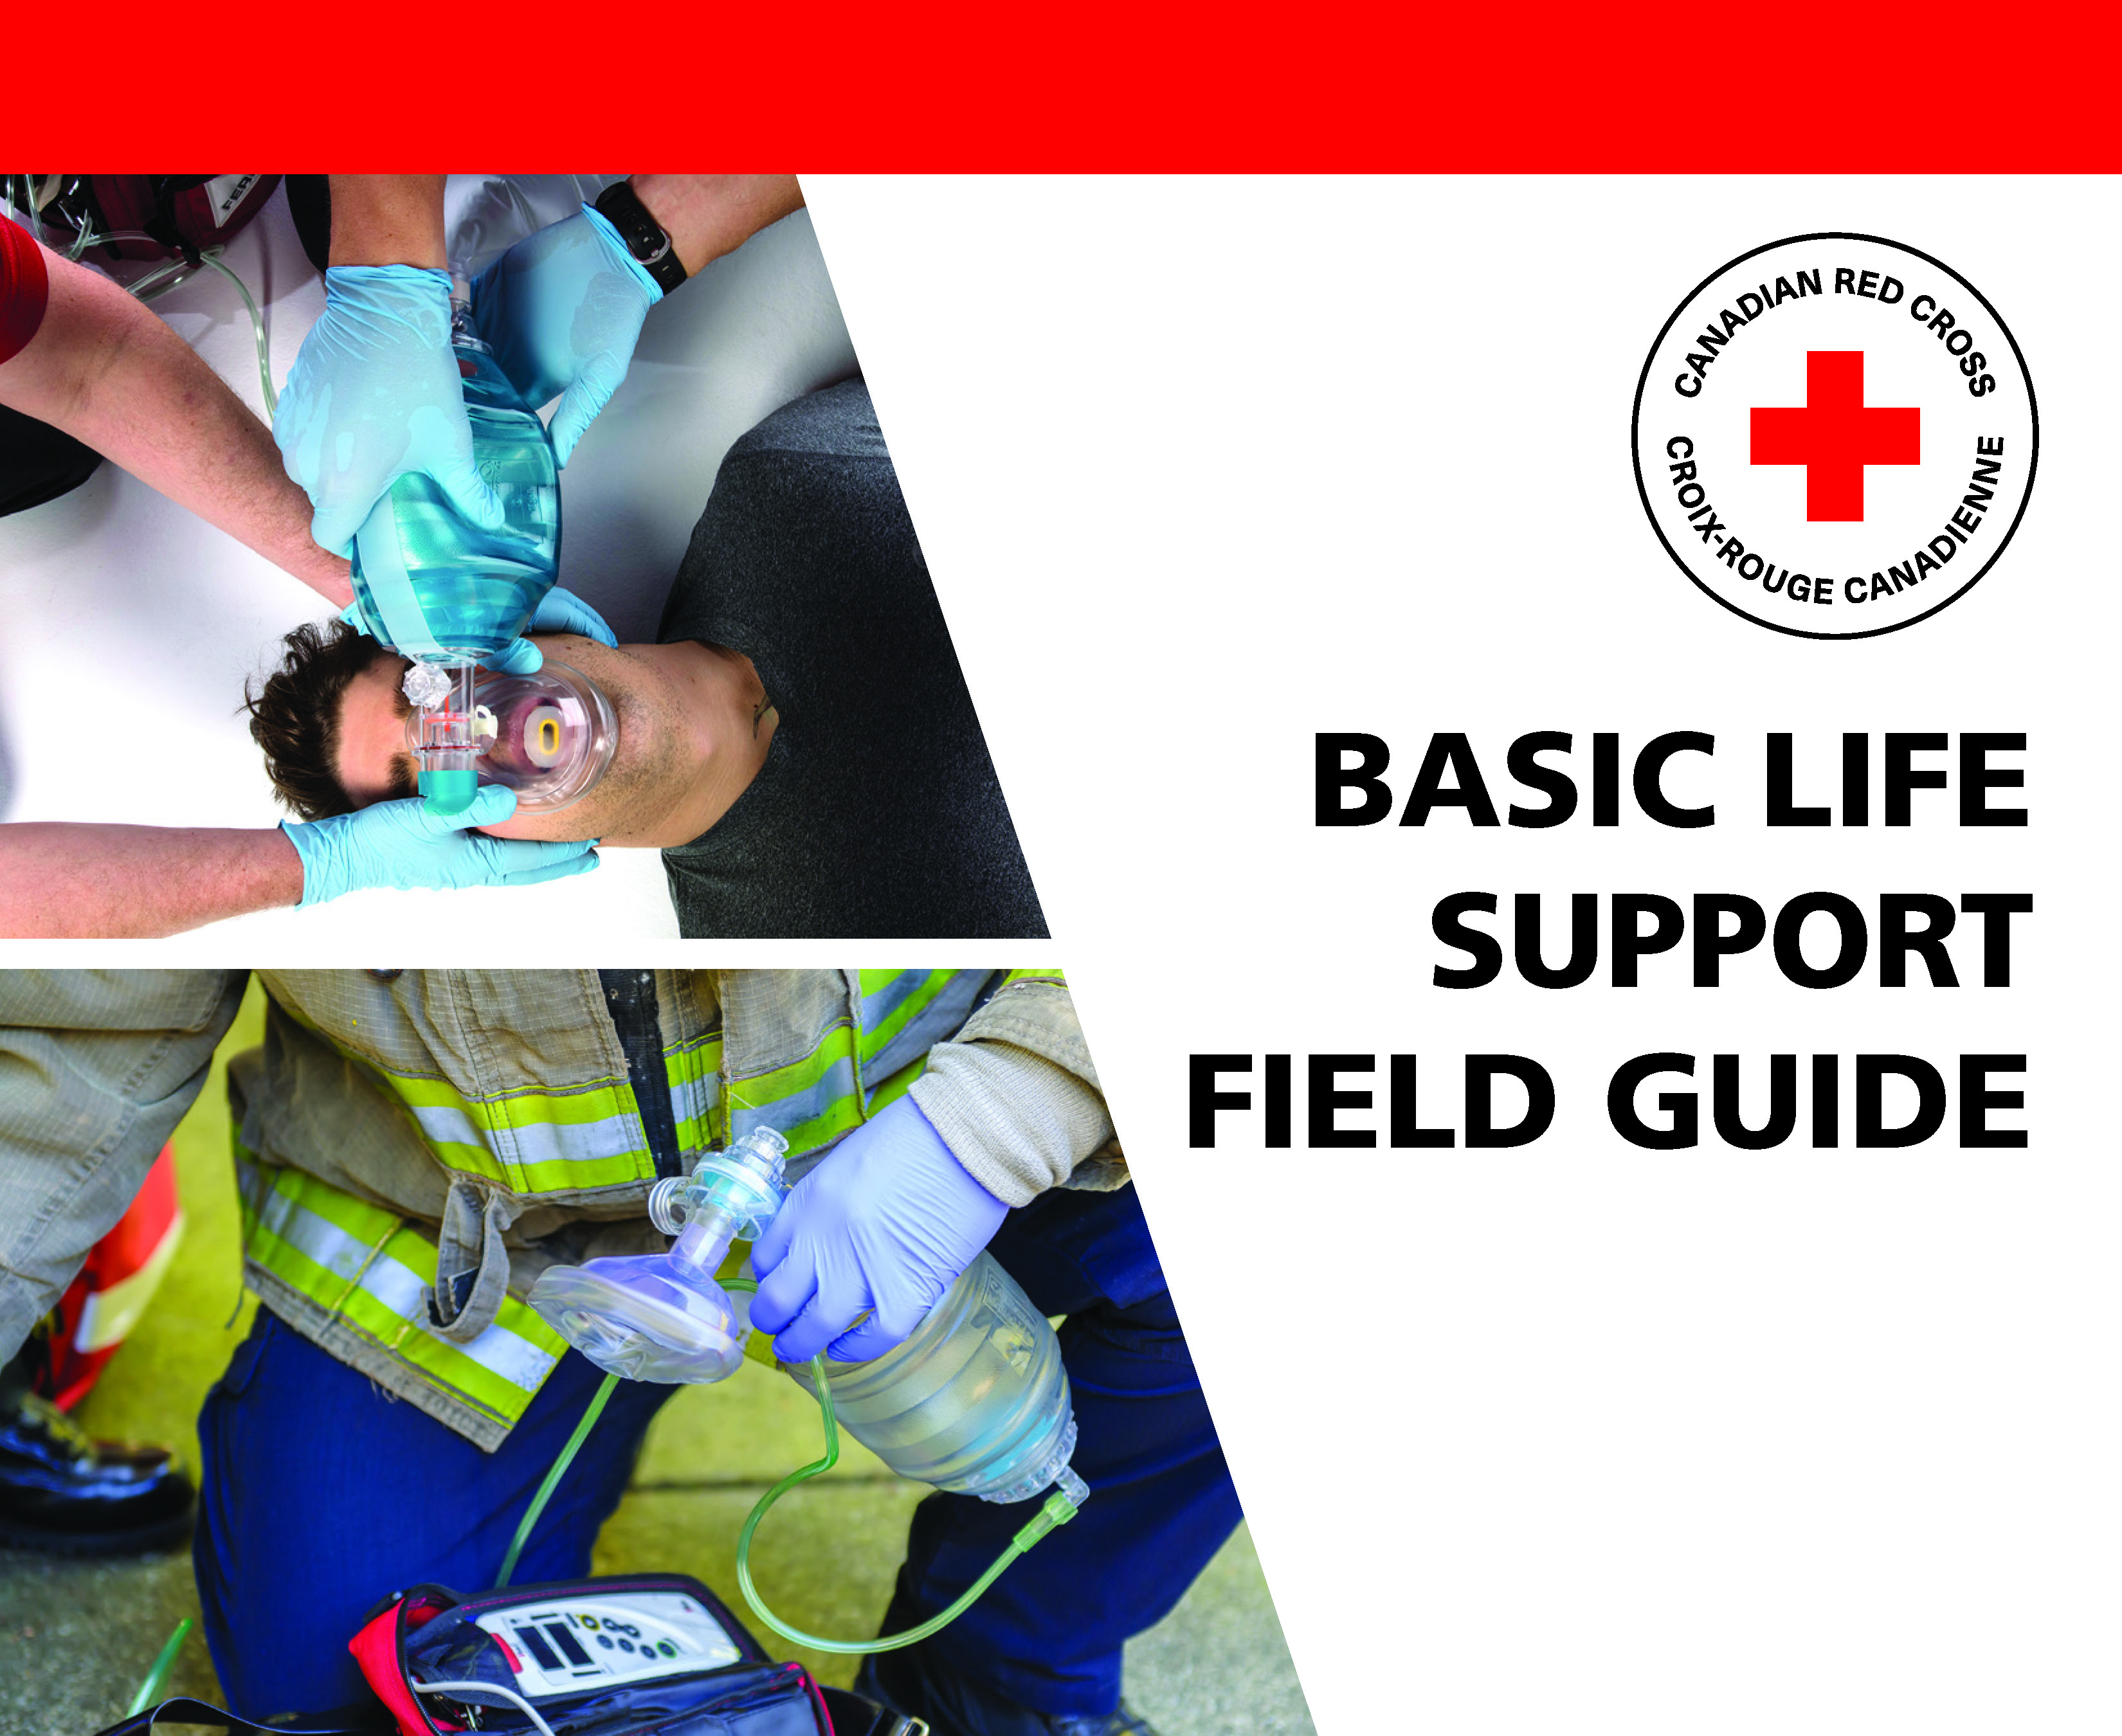 Basic Life Support Field Guide (English) image